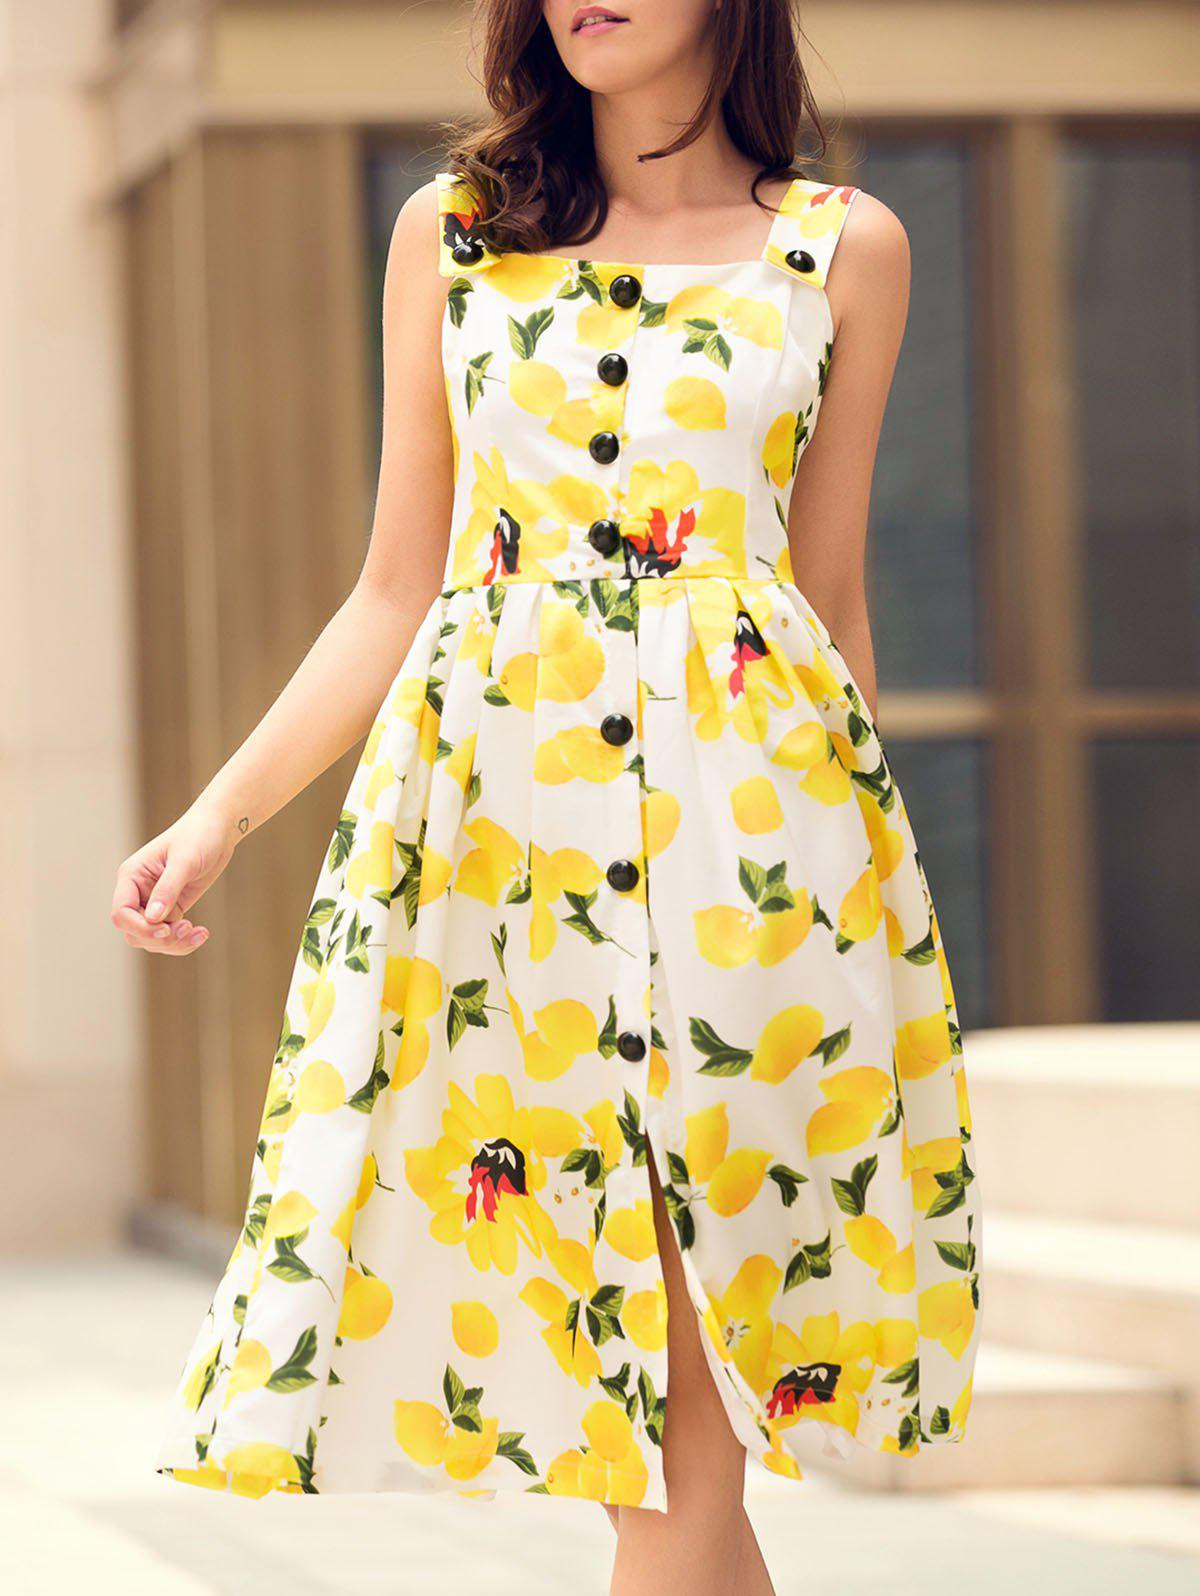 Refreshing Square Neck Sleeveless Lemon Print Women's Midi Dress - YELLOW S